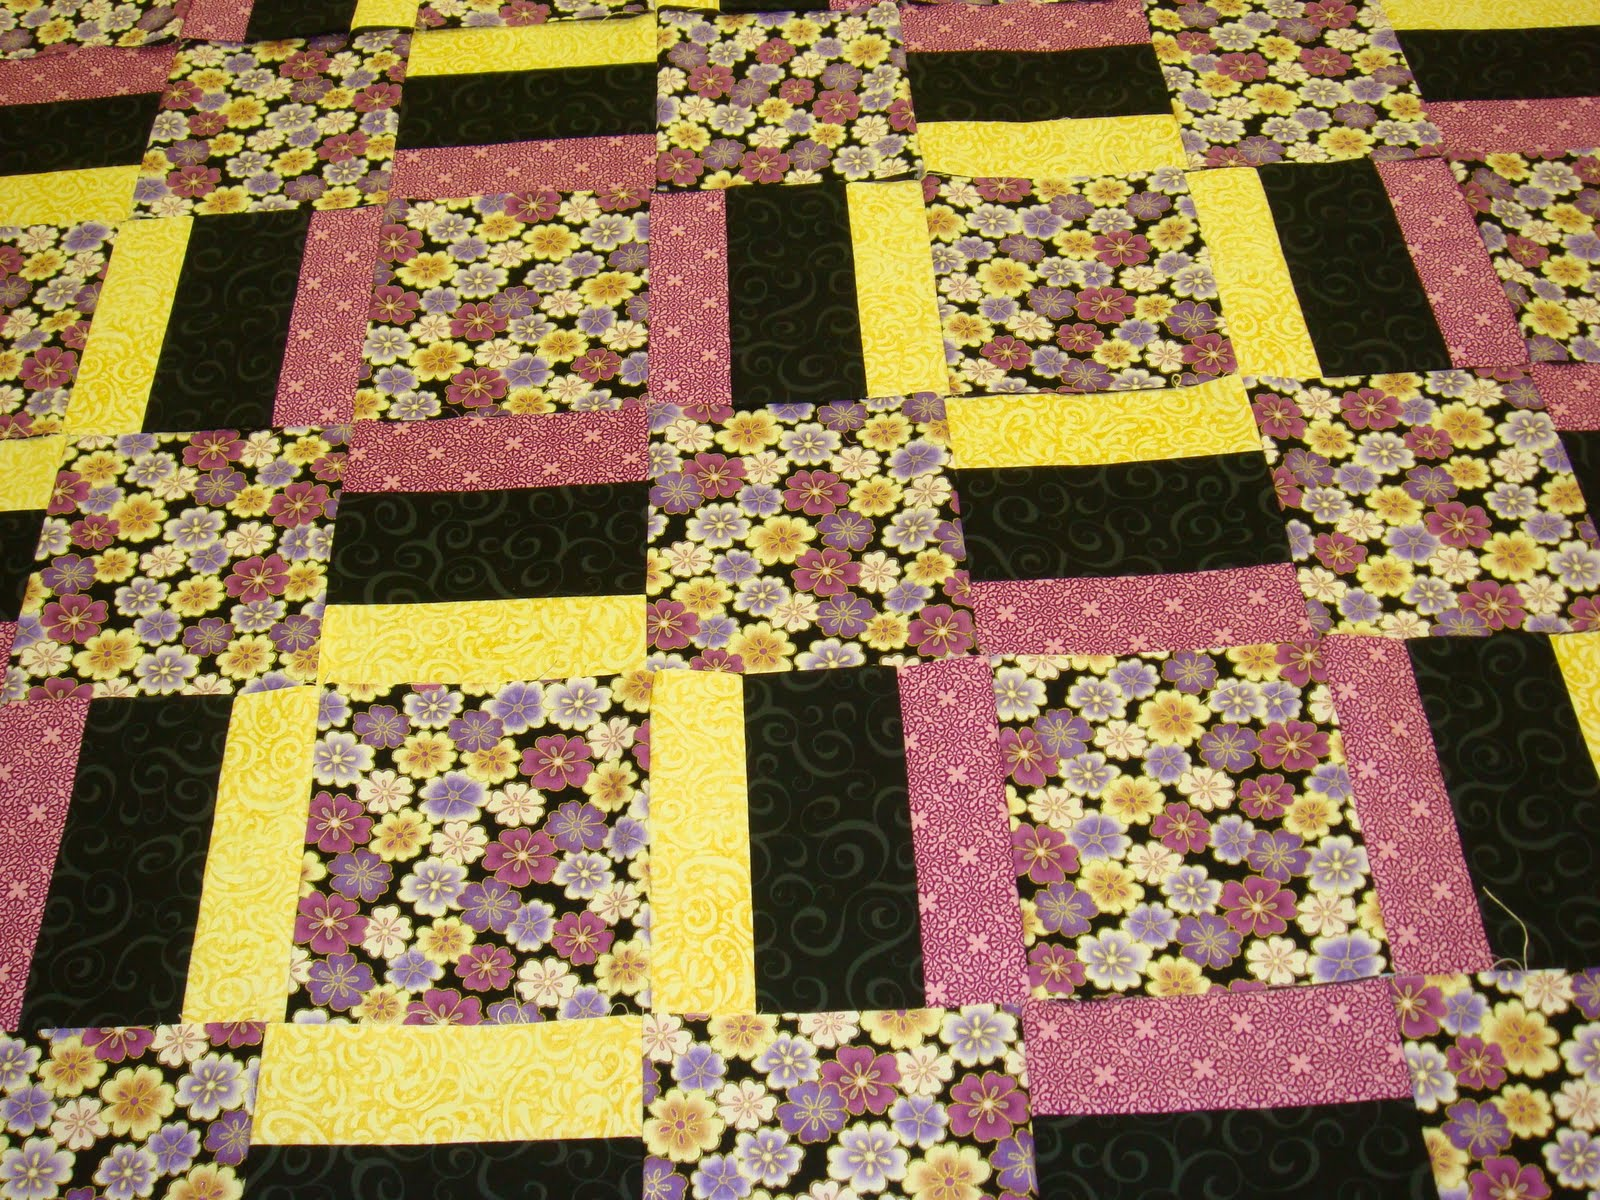 Simple Block Quilt Patterns For Beginners : SIMPLE QUILTS PATTERNS Browse Patterns